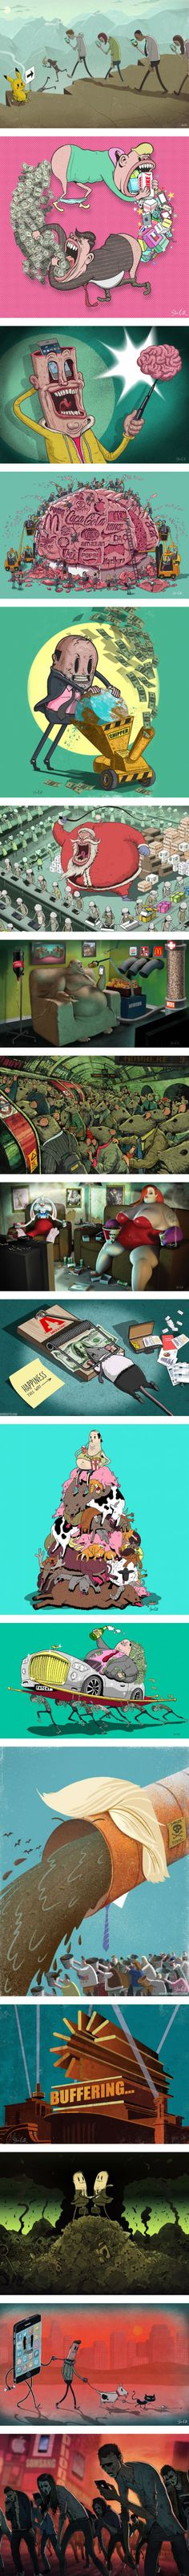 These 17 satirical images illustrate the pitfalls of pop consumer culture by Steve Cutts Satire, Sketch Manga, Consumer Culture, Cartoon Kunst, Photo Images, Thought Provoking, Oeuvre D'art, Best Funny Pictures, Les Oeuvres